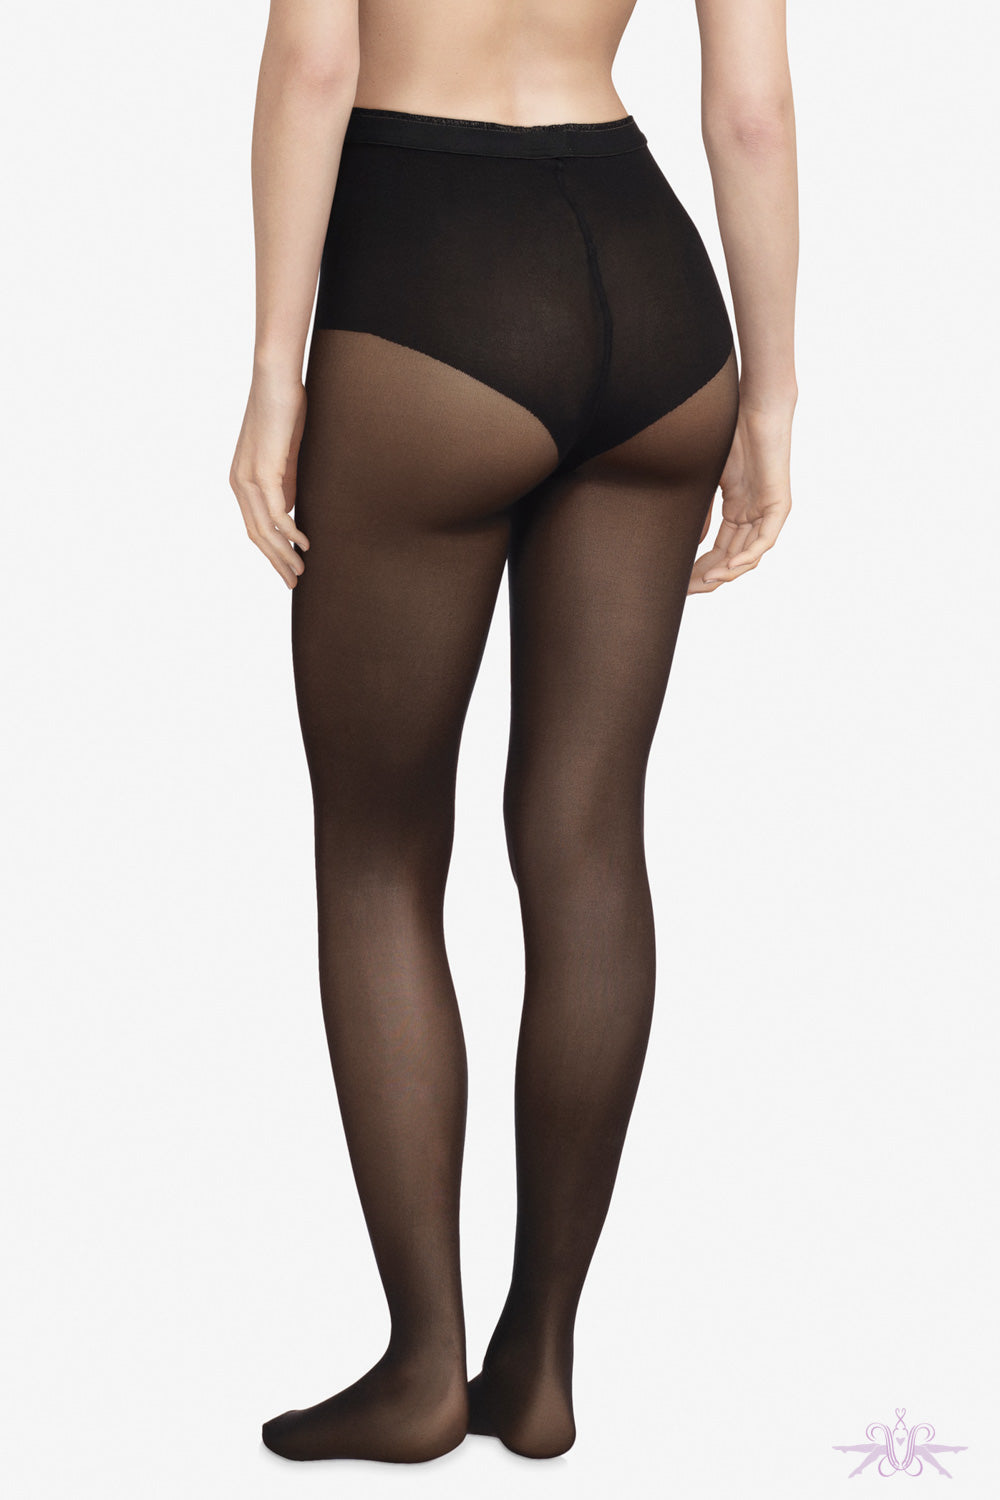 Chantal Thomass 20 Denier Tights